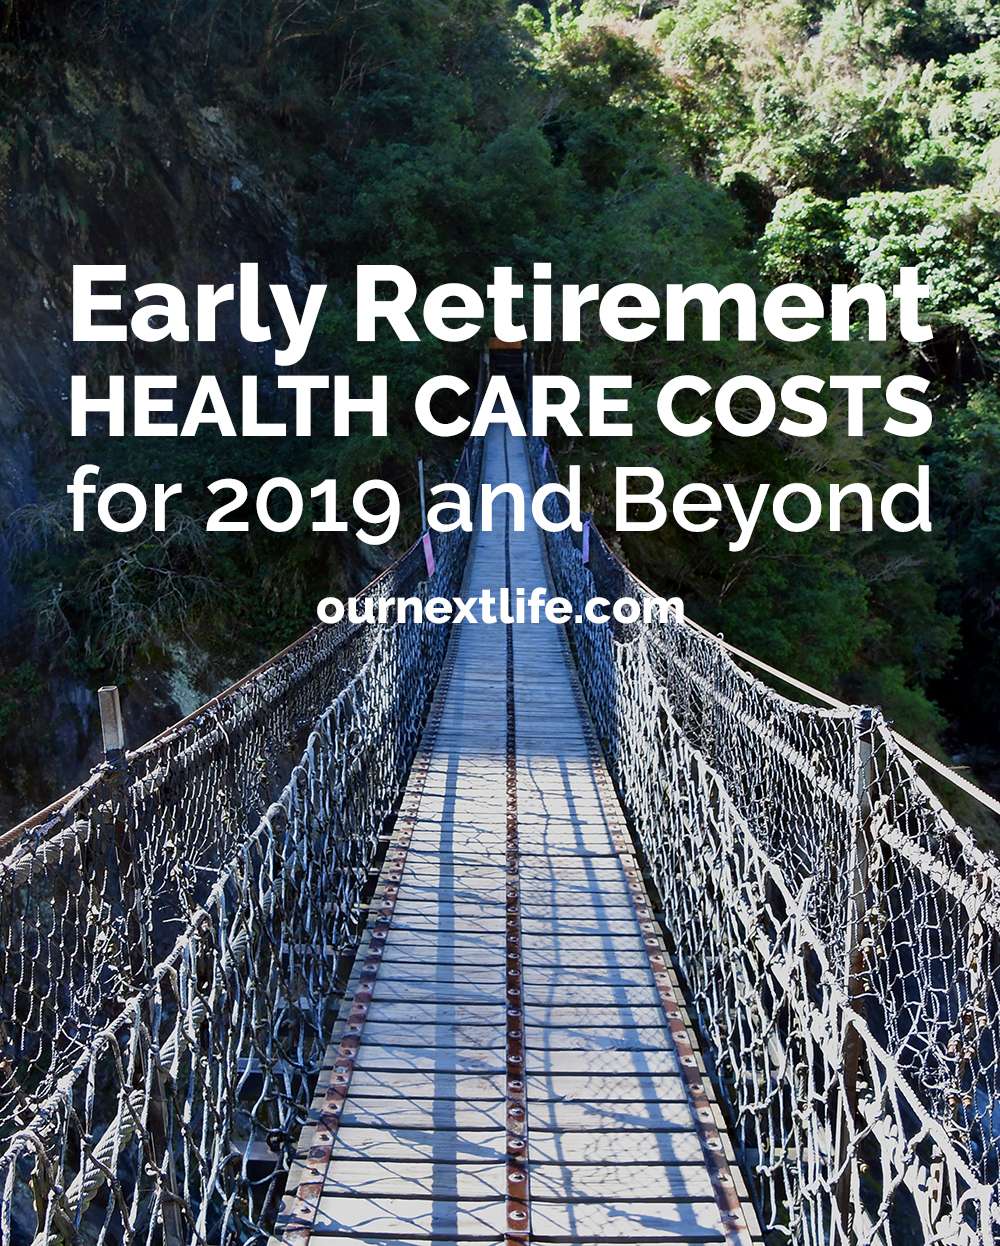 early retirement health care costs in 2019 and beyond // obamacare, aca, affordable care act for early retirement // our next life // early retirement, financial independence, fire, adventure, happiness, health